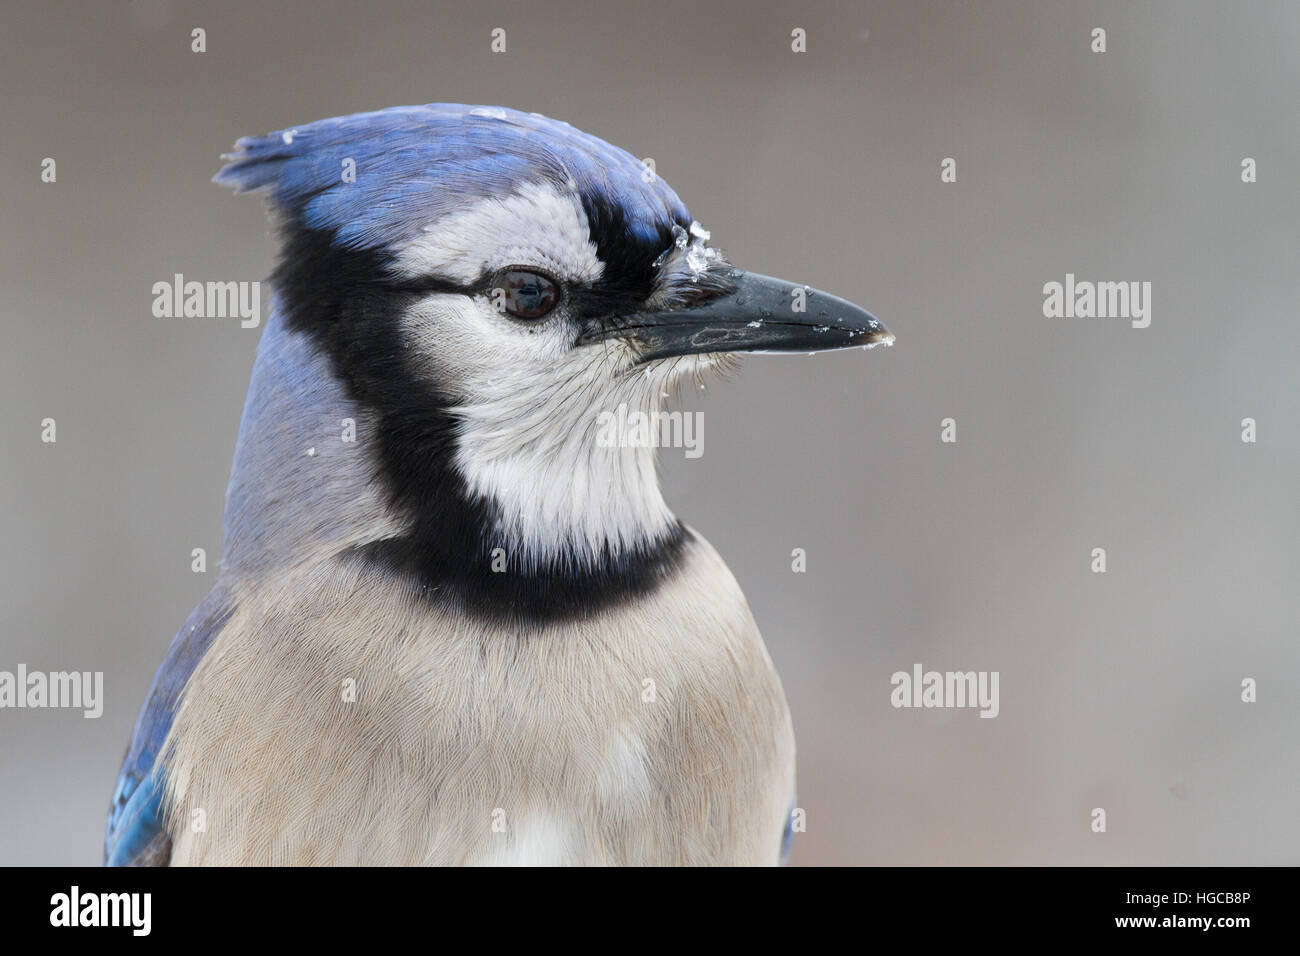 A closeup of a blue jay during a snow-fall Stock Photo